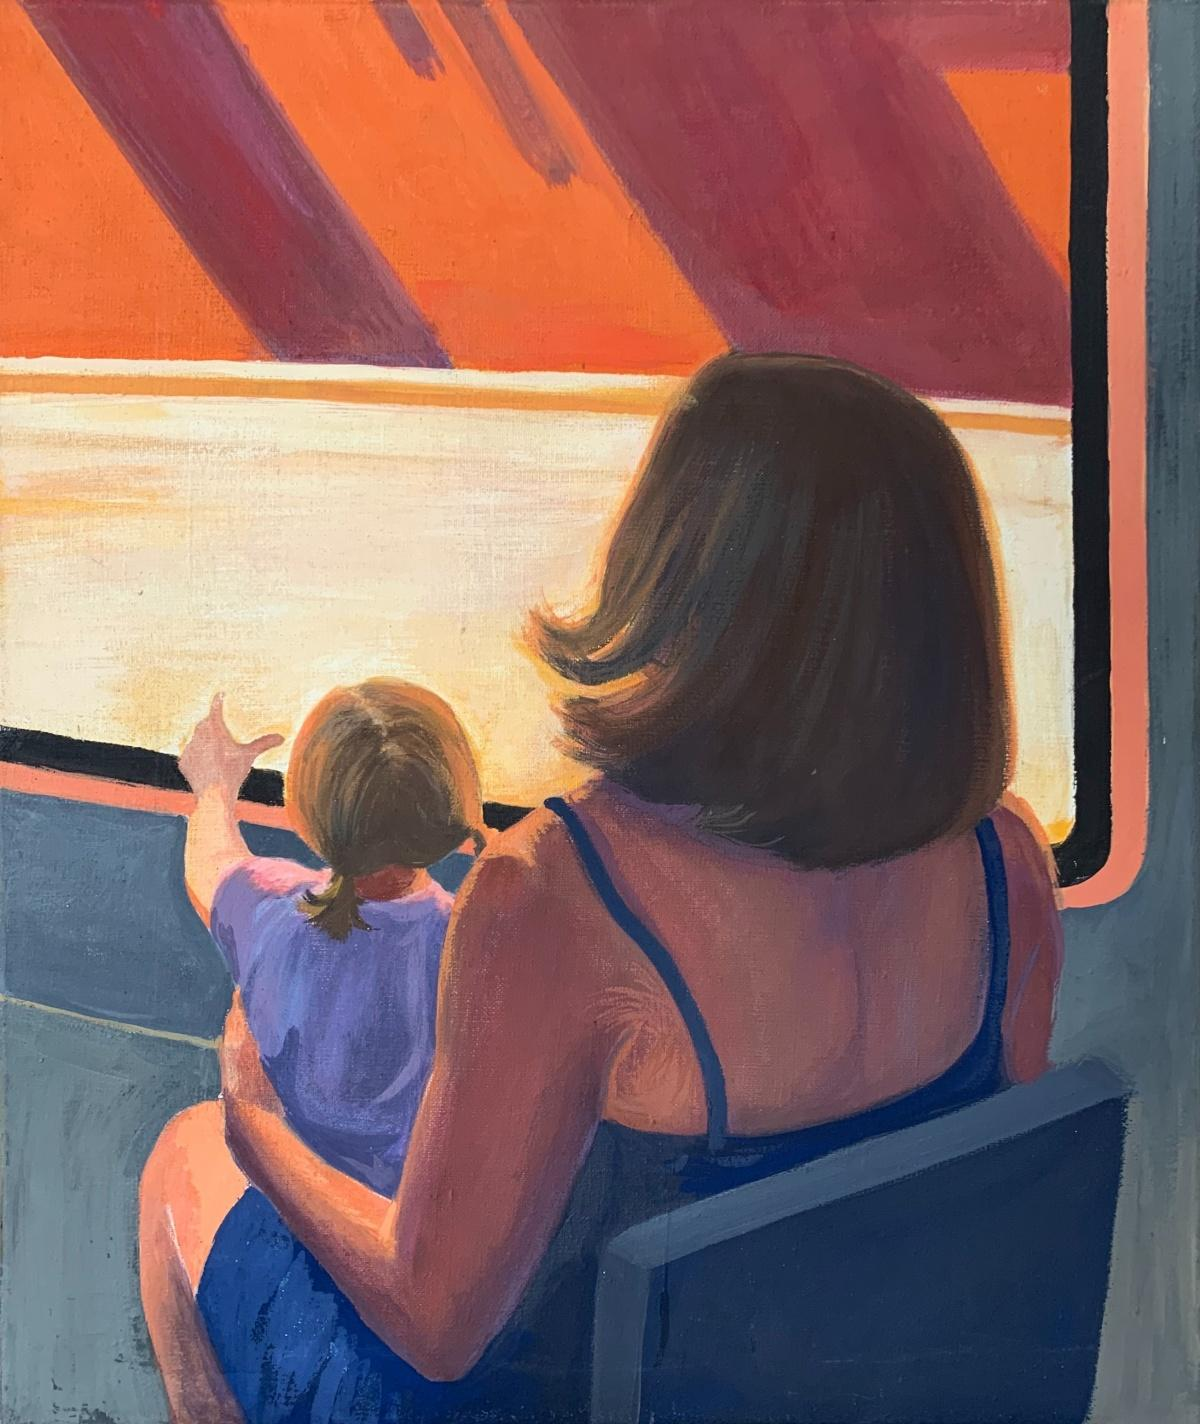 A journey - Contemporary tempera painting, Young art, Realism, Warm colors